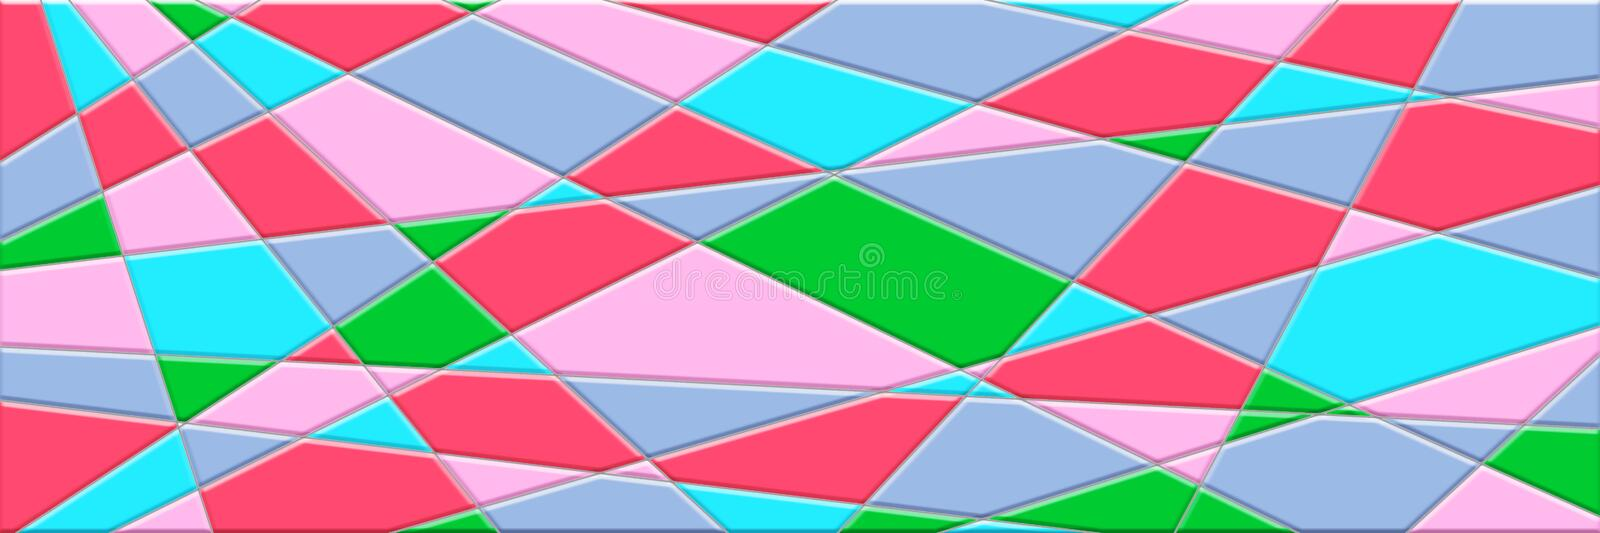 Abstract background has lines and geometric shapes stock illustration